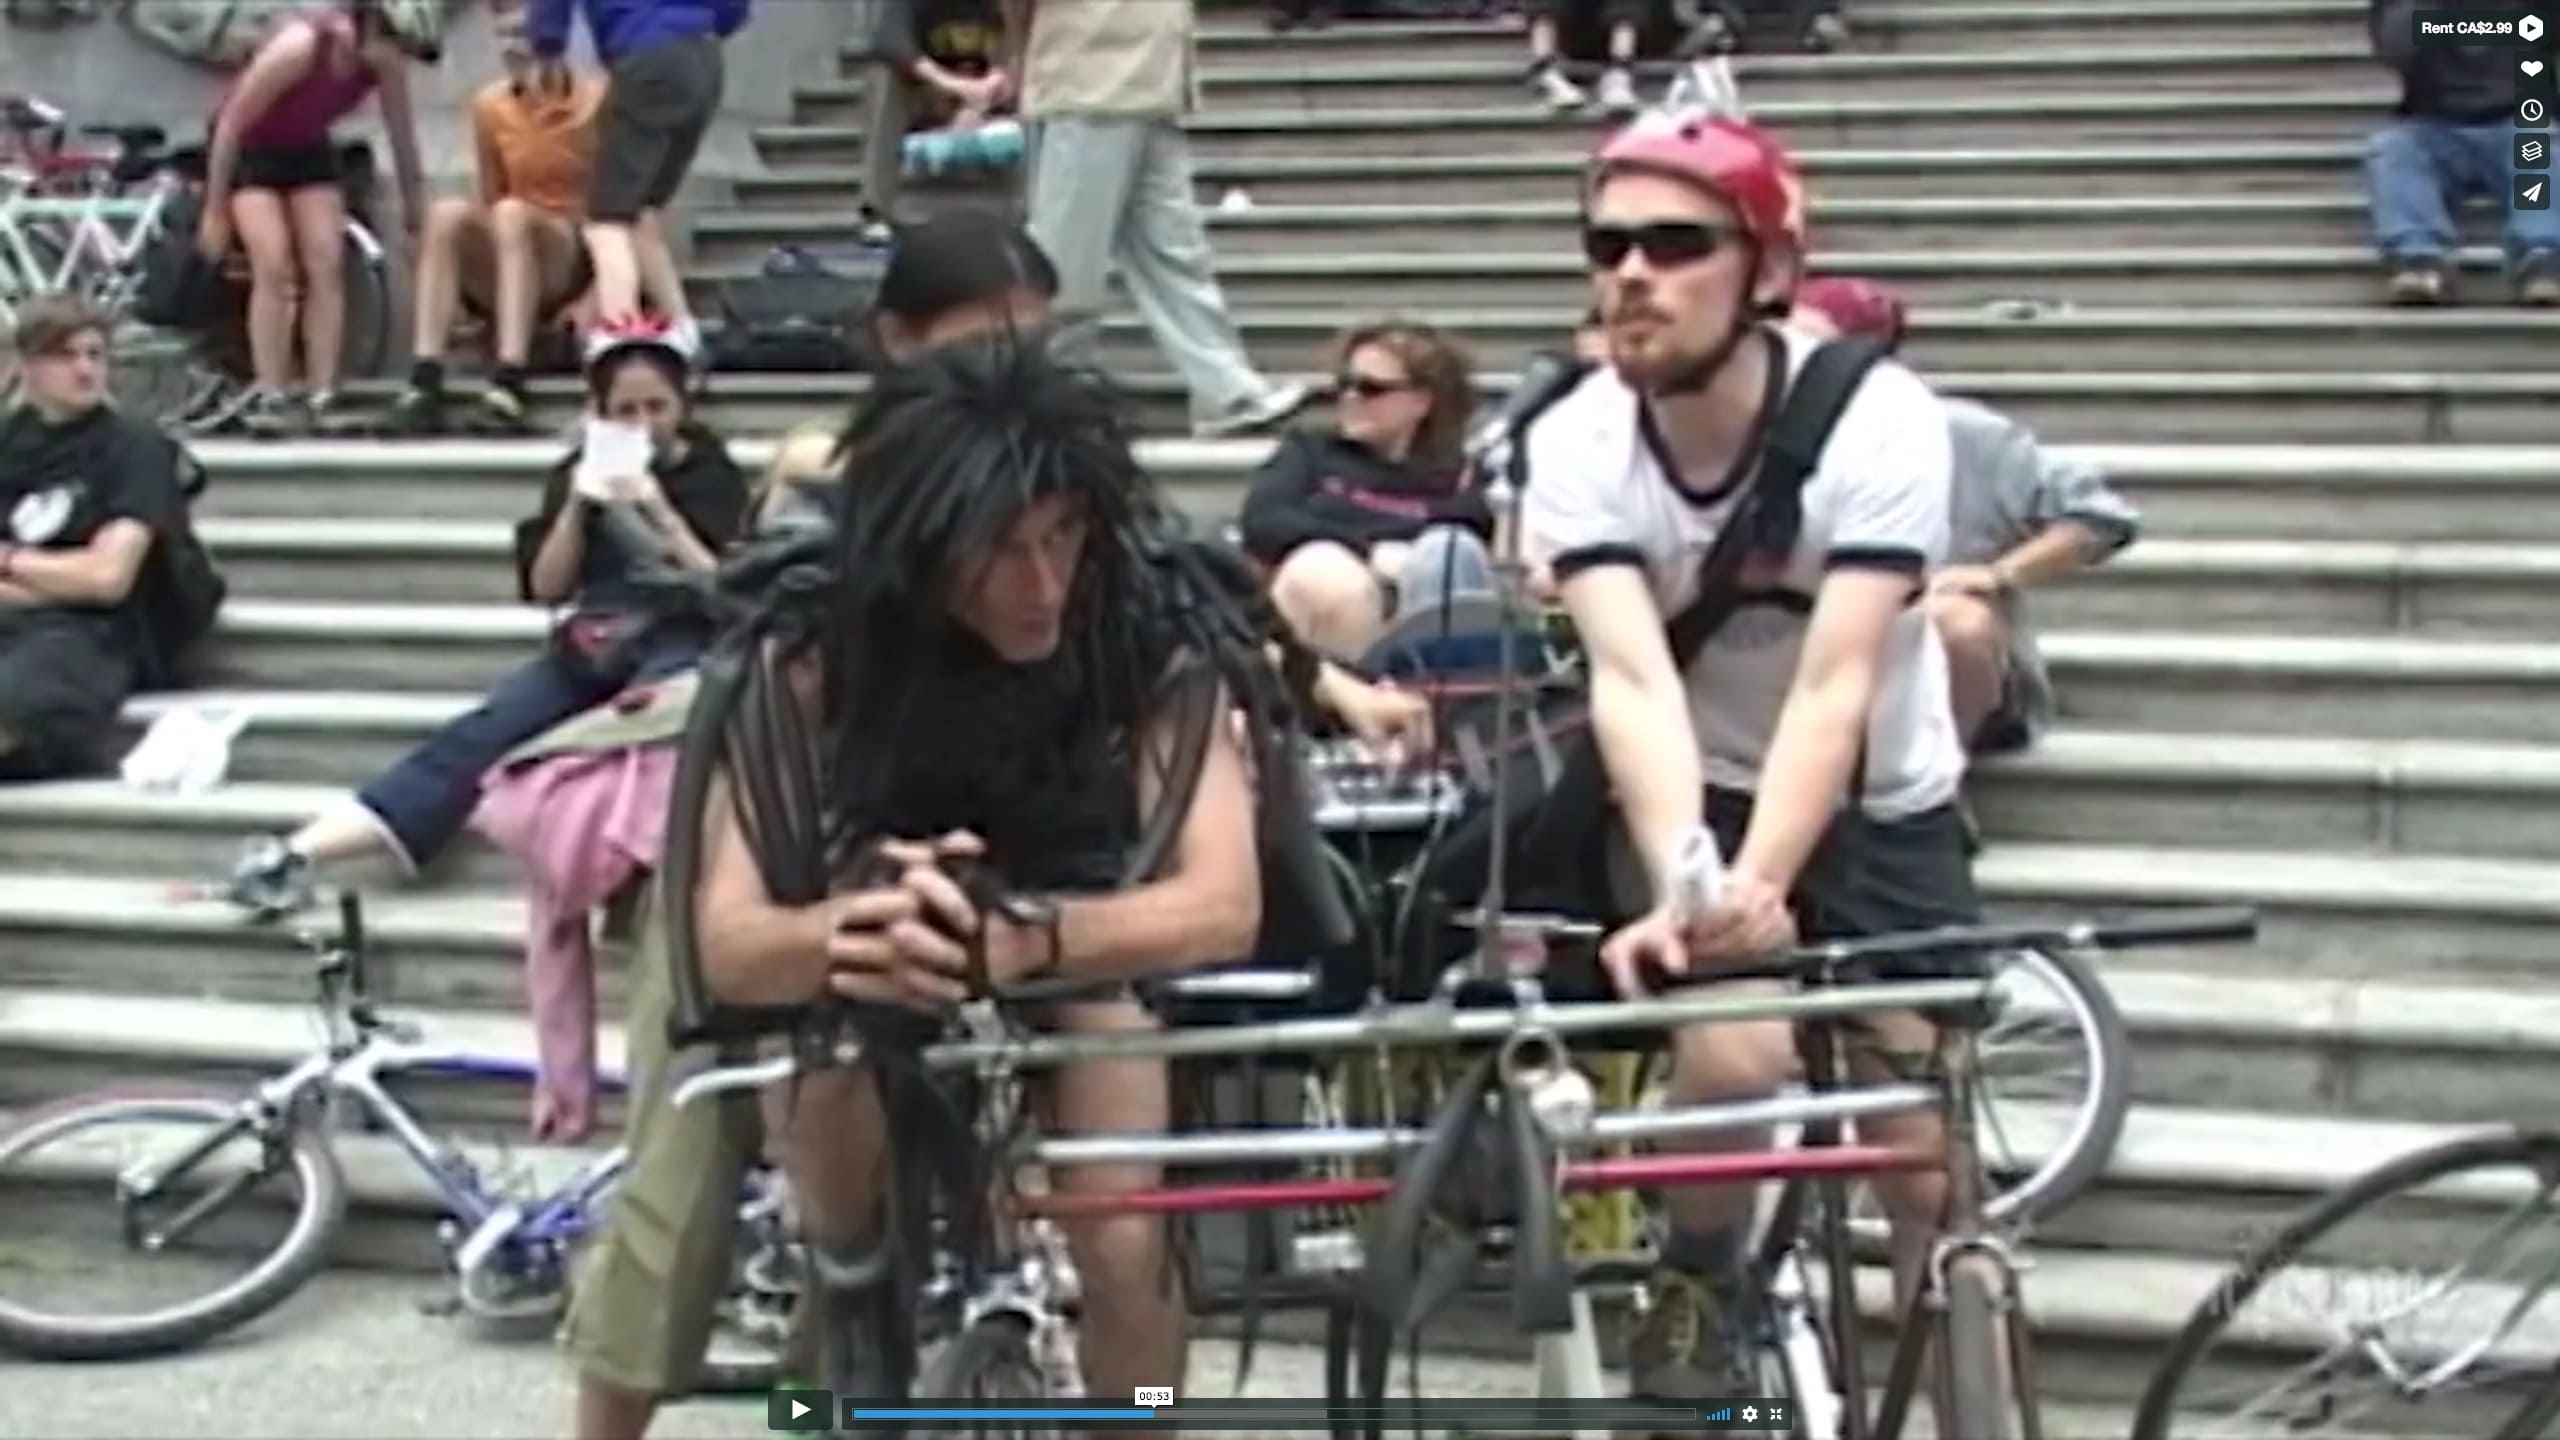 Still from You Never Bike Alone